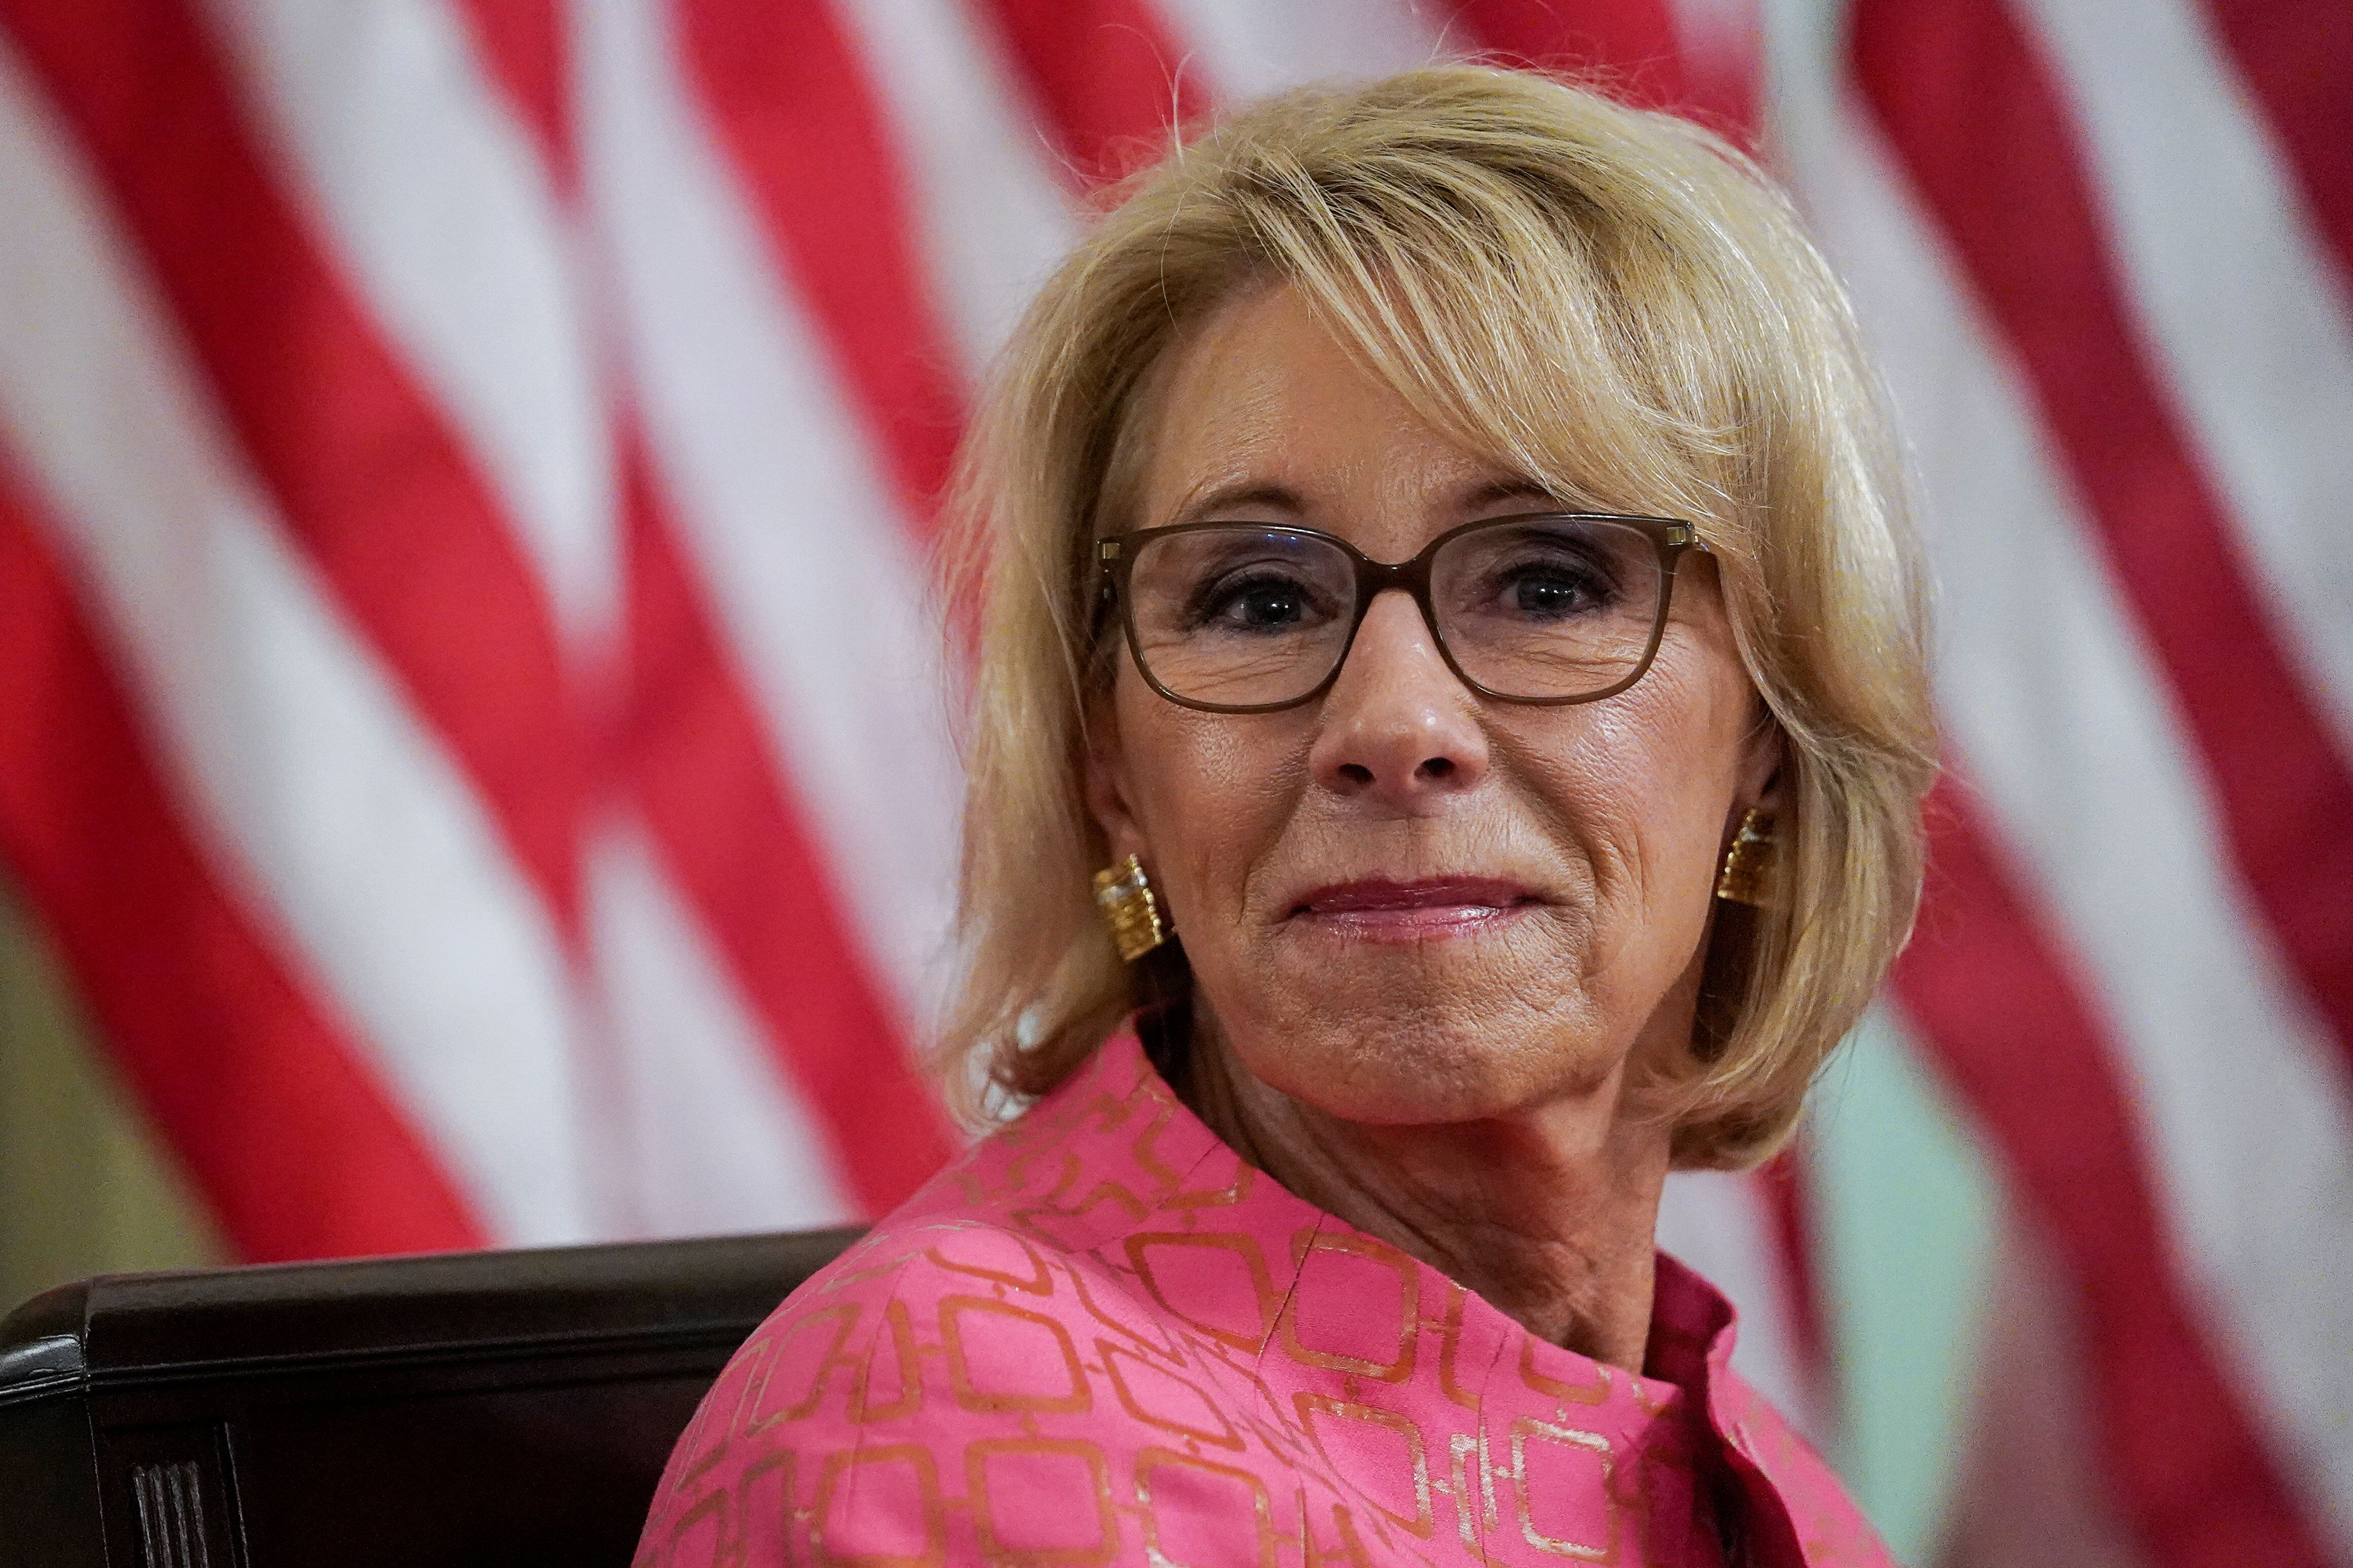 Opposition to outgoing Education Secretary Betsy DeVos has been a source of unity among education groups that are otherwise i